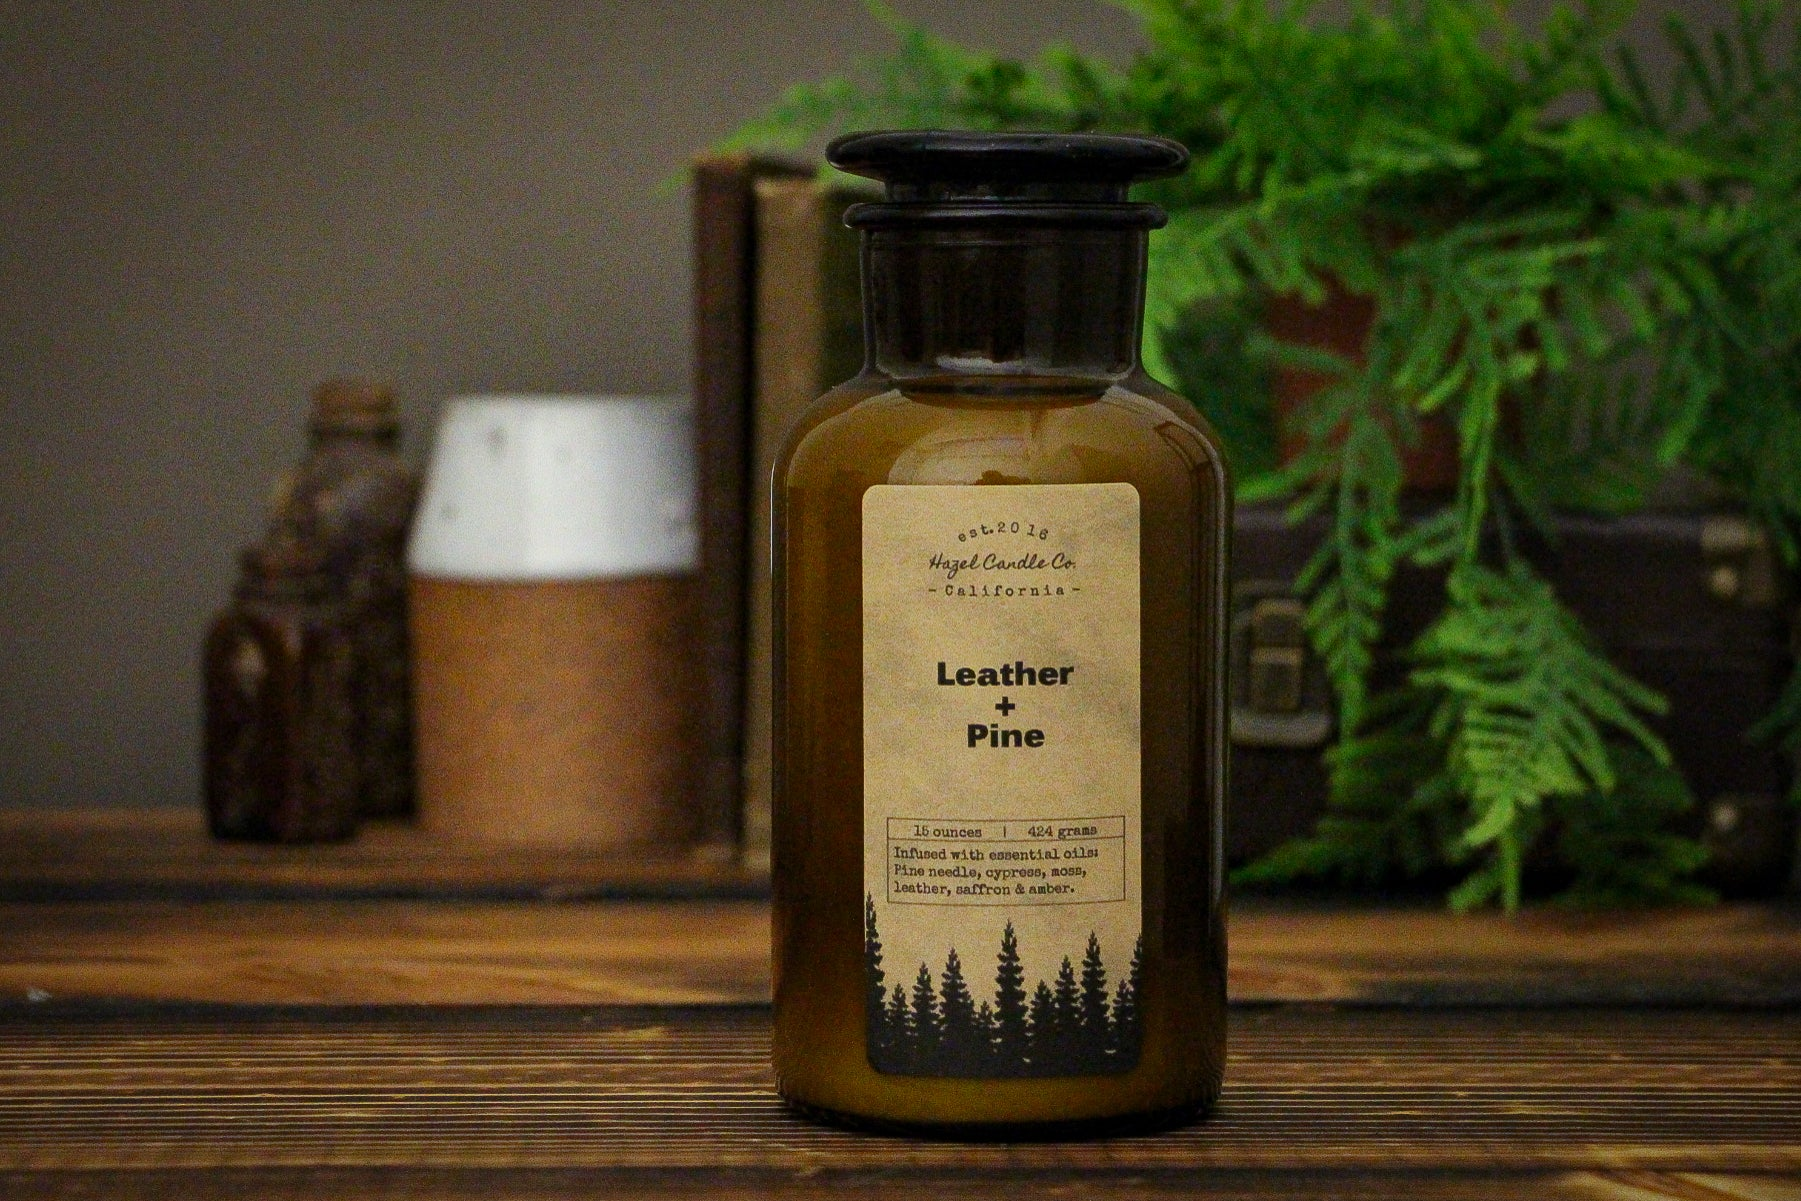 Limited Edition Leather & Pine Apothecary Soy Candle